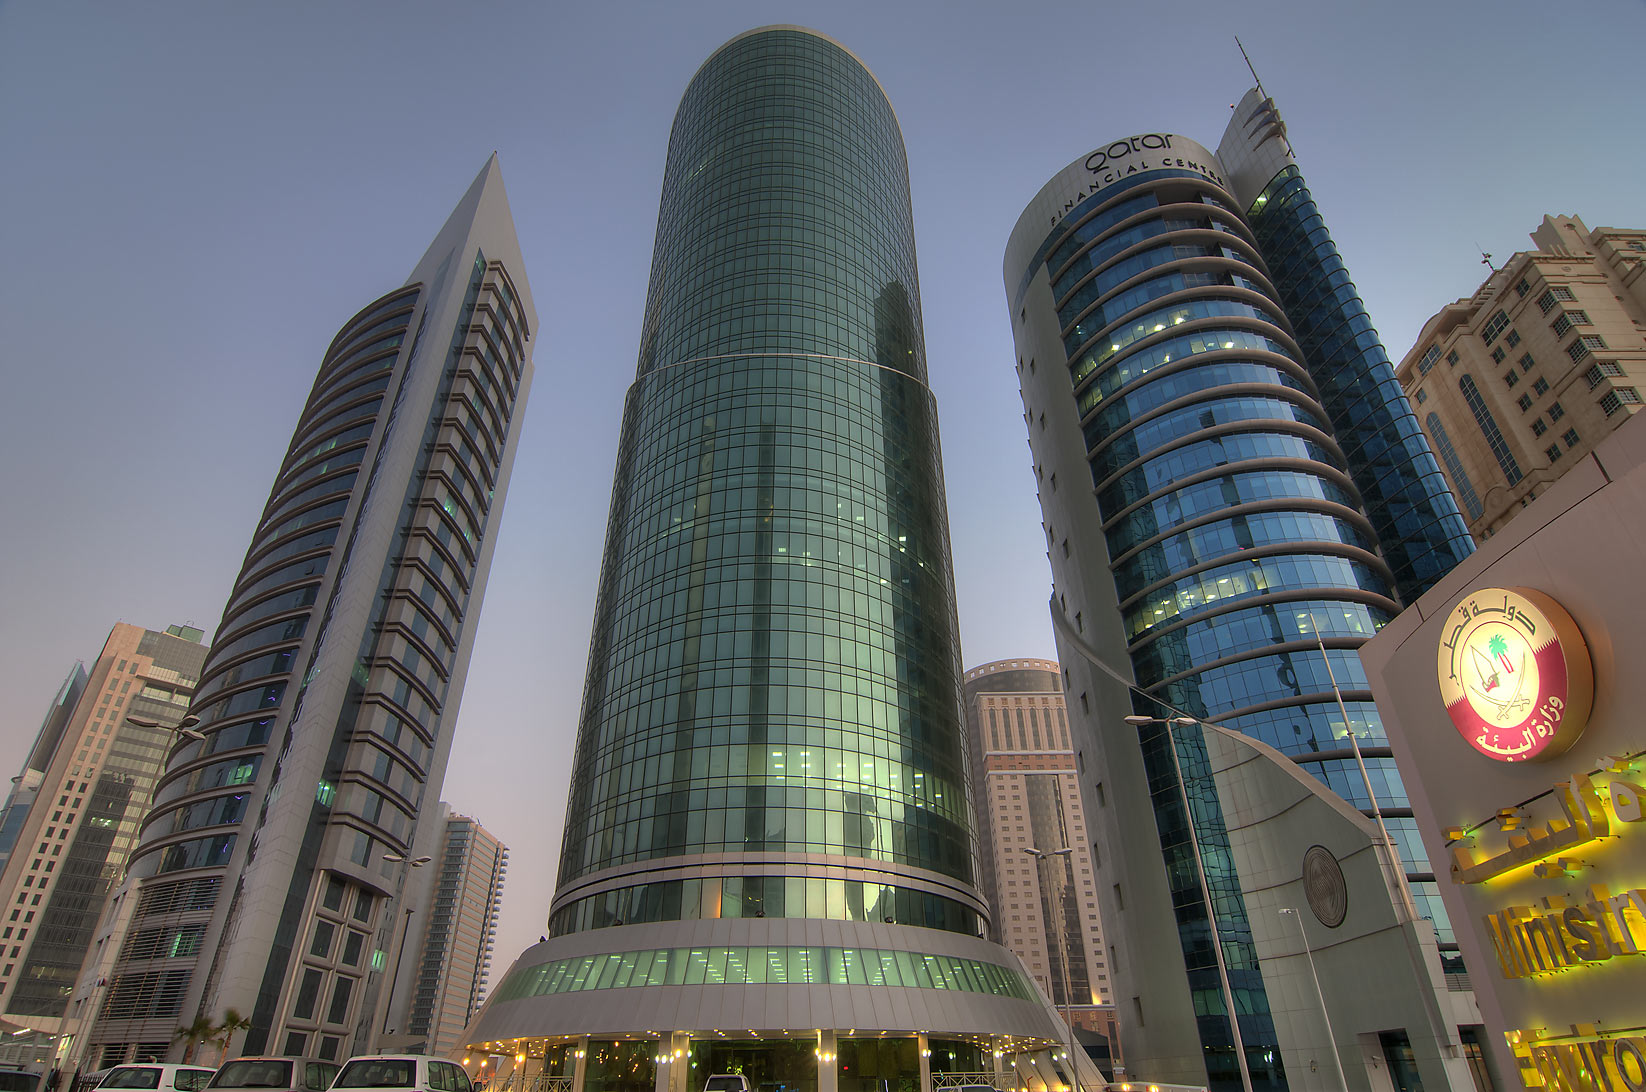 Ministry of Environment and Al Murqab Tower (Financial Center) in West Bay. Doha, Qatar